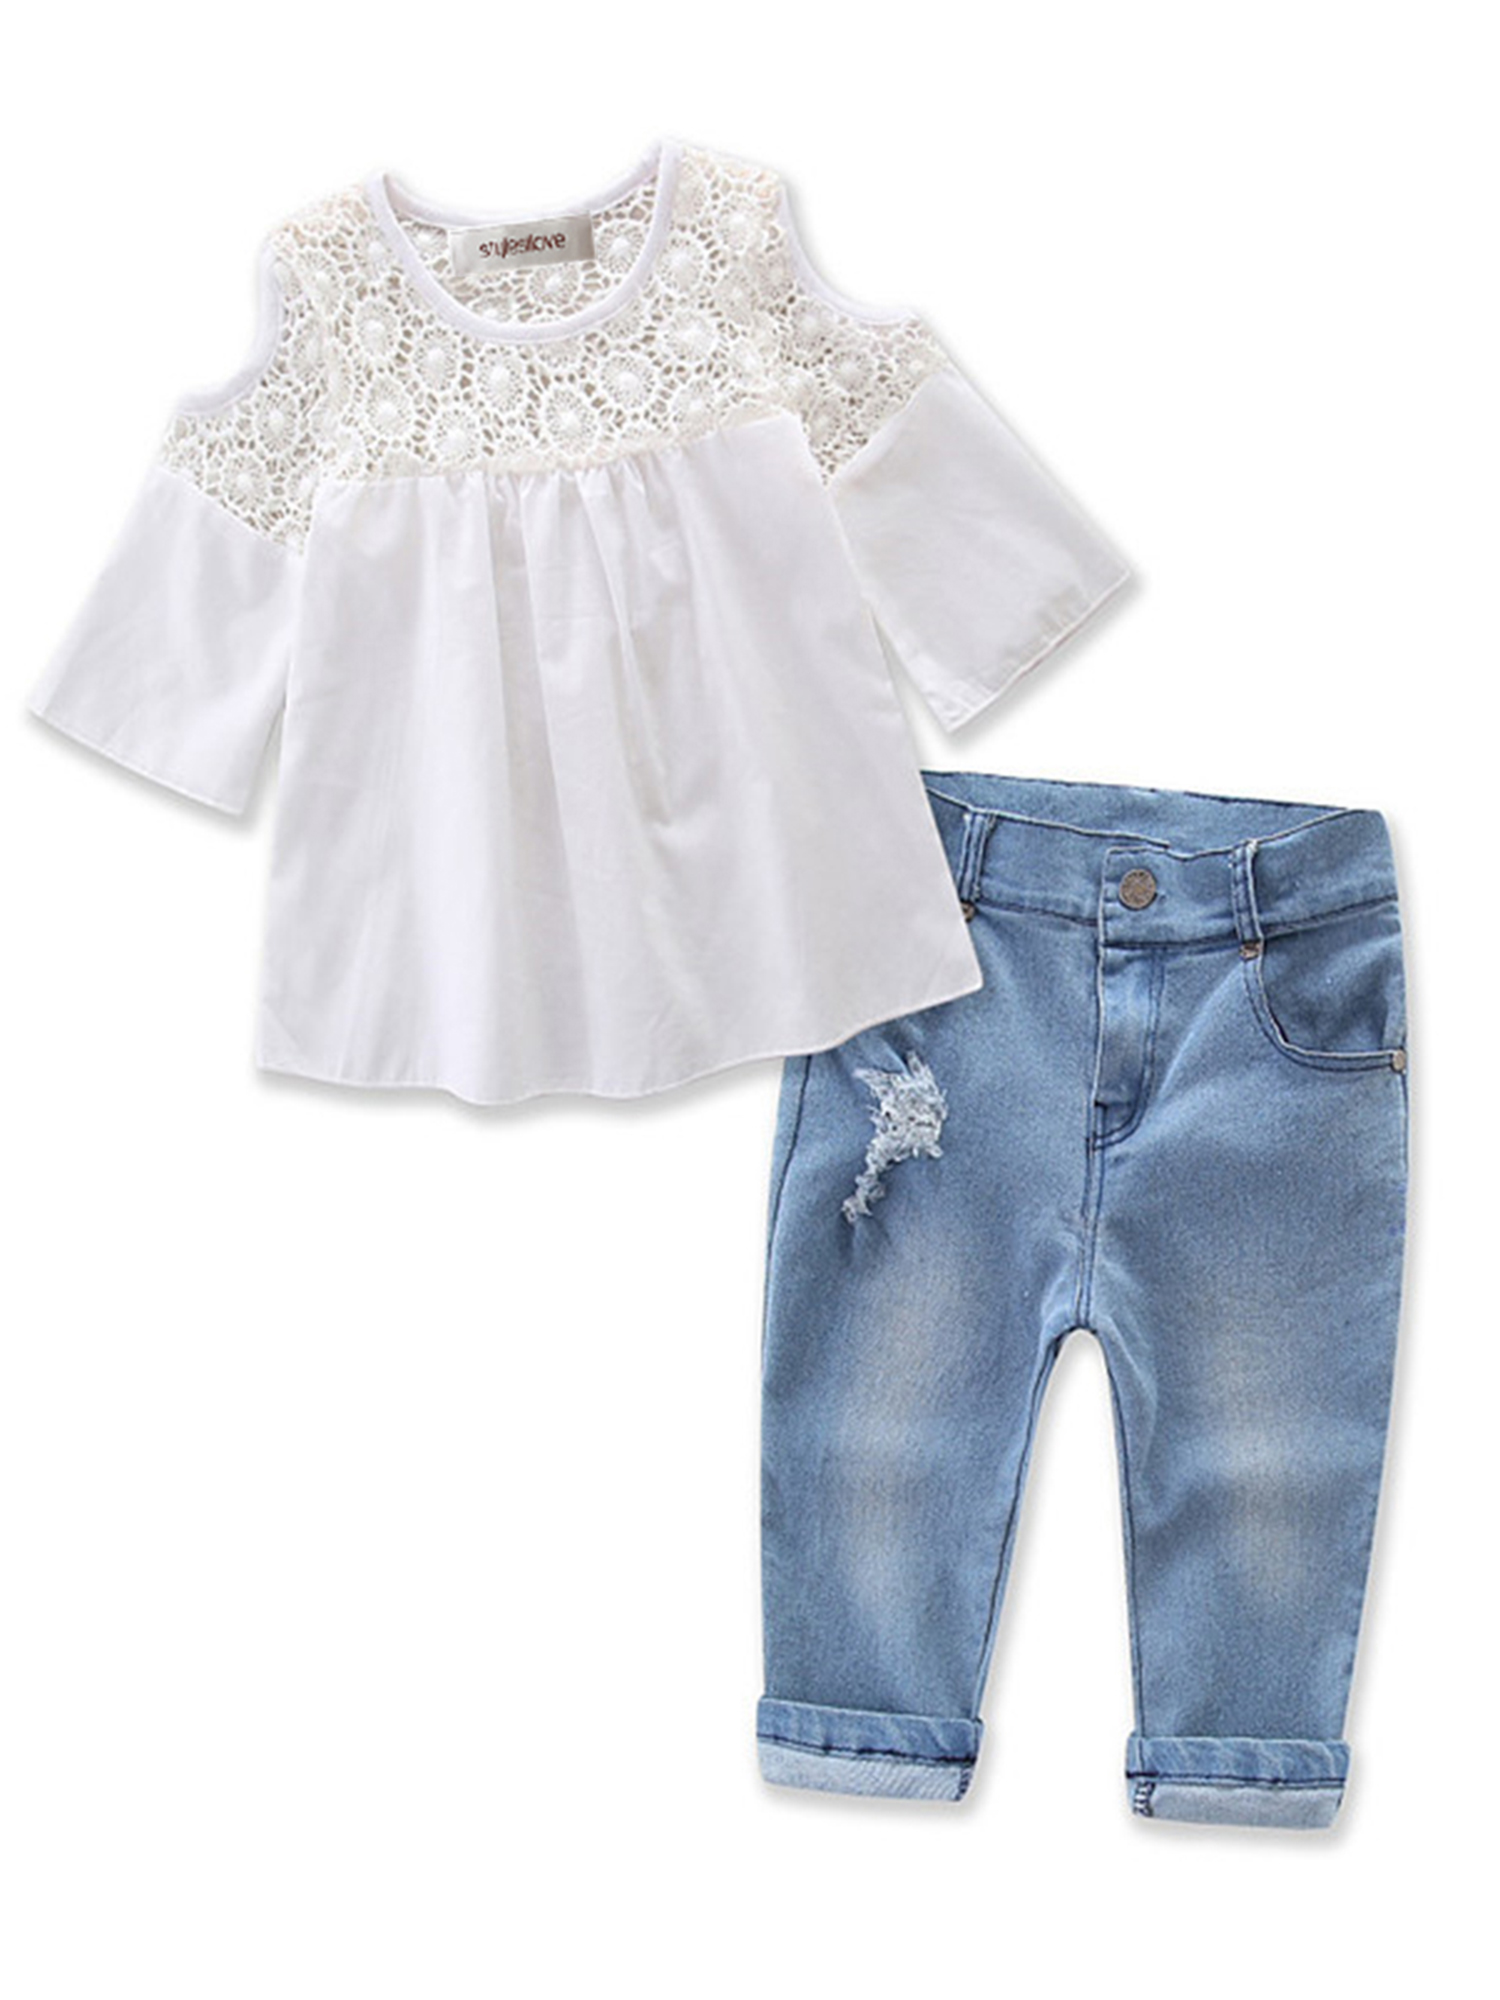 StylesILove Sweet Girl Lace Design Off Shoulder 3/4 Sleeve Blouses and Jeans 2 pcs Outfit Set (4T)